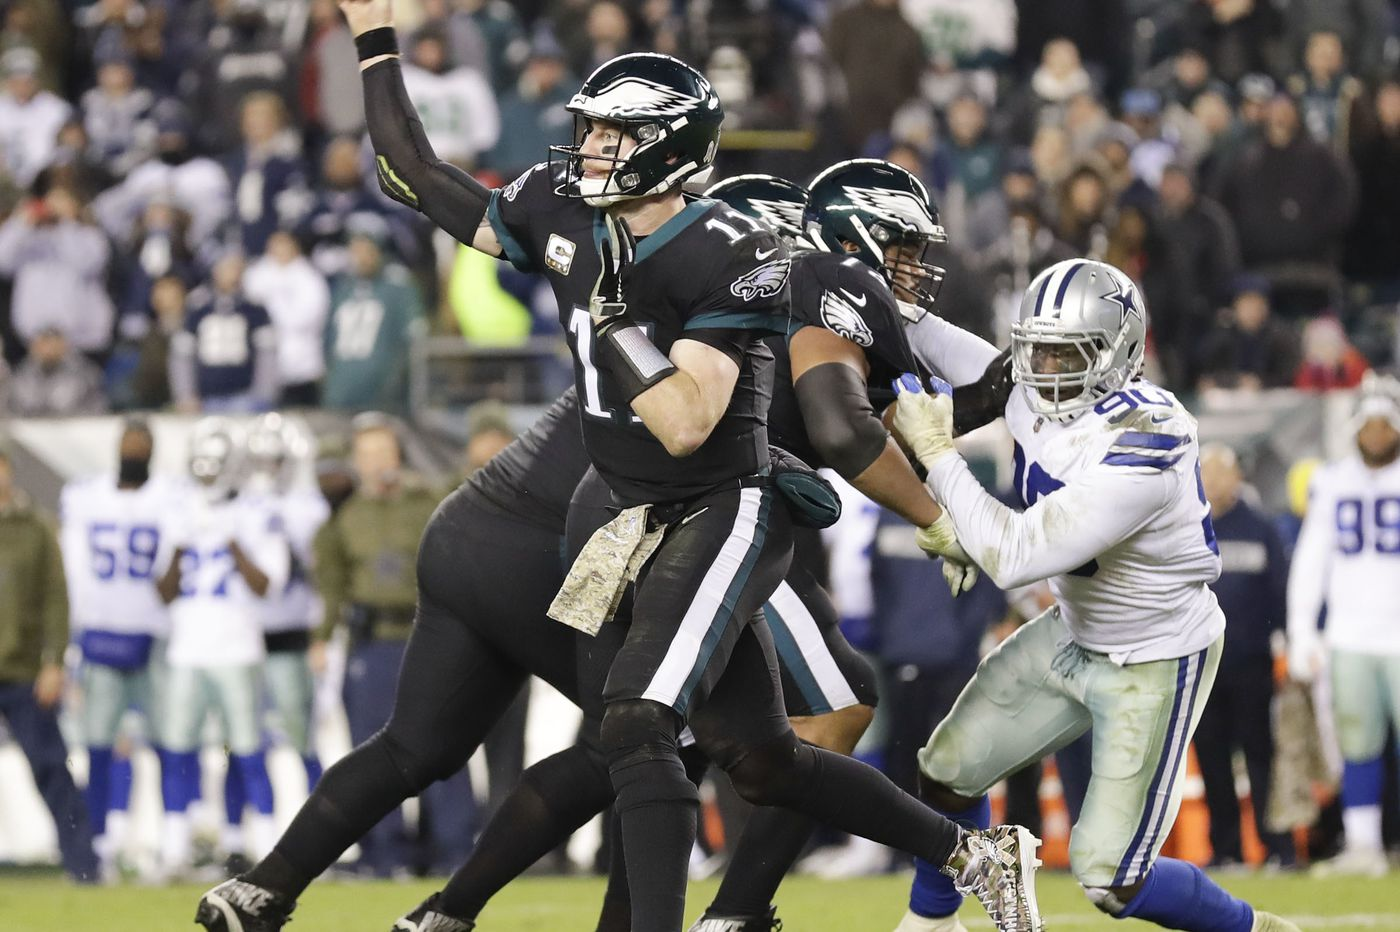 Eagles-Cowboys: Our beat writers' predictions for Sunday's NFC East showdown